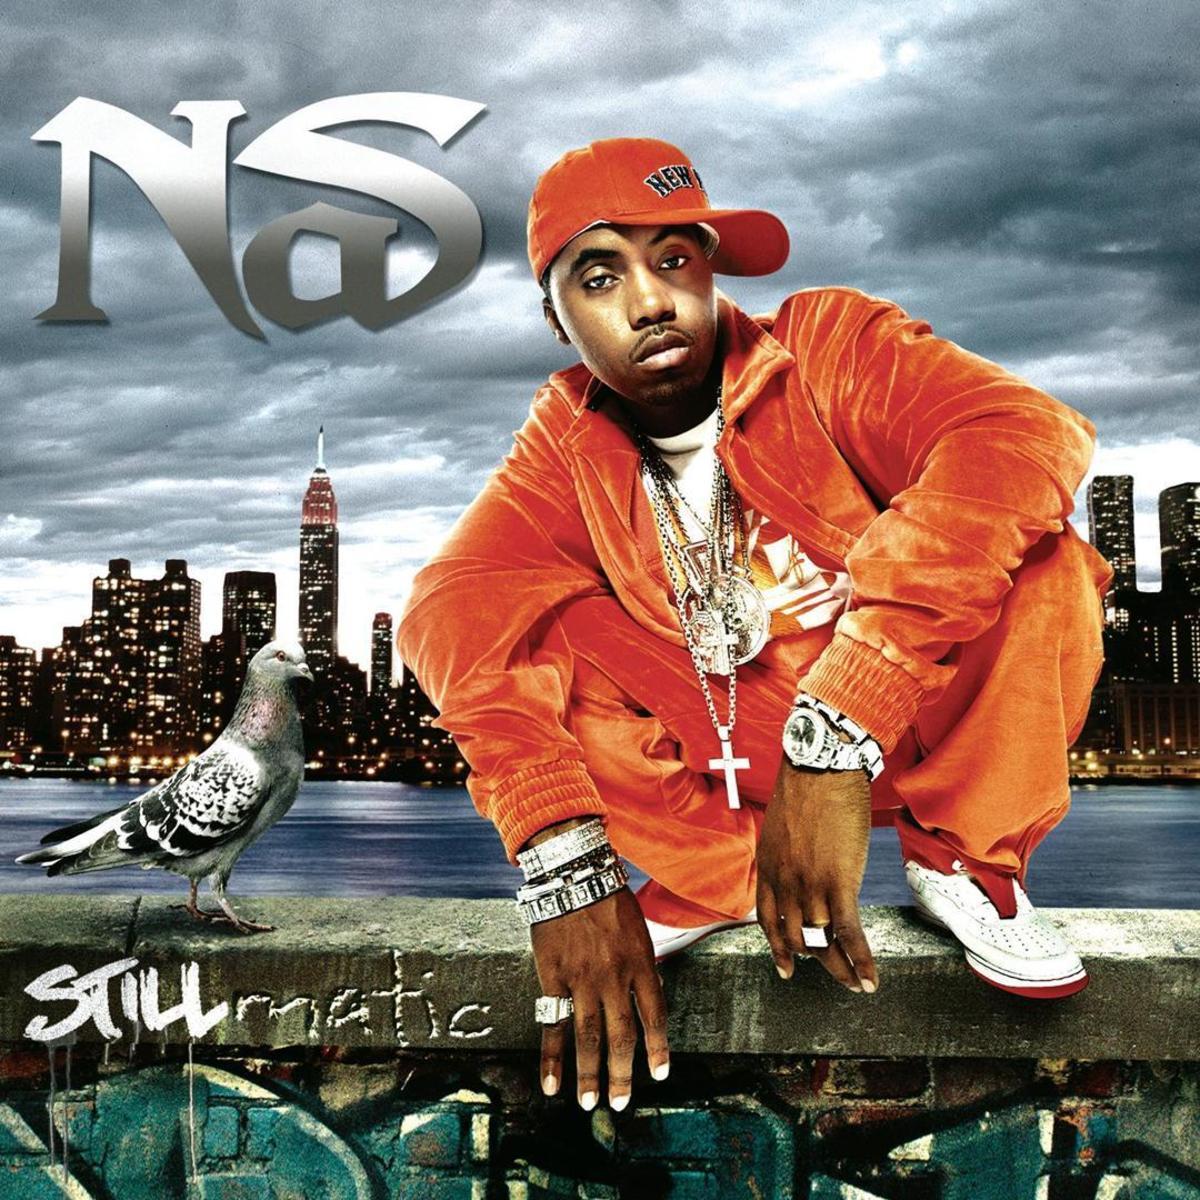 10 best rap album sequels ranked djbooth nas 1994 debut illmatic is a contender for the corniest sequel title based on a debut just imagine if jay z had called the second blueprint album the malvernweather